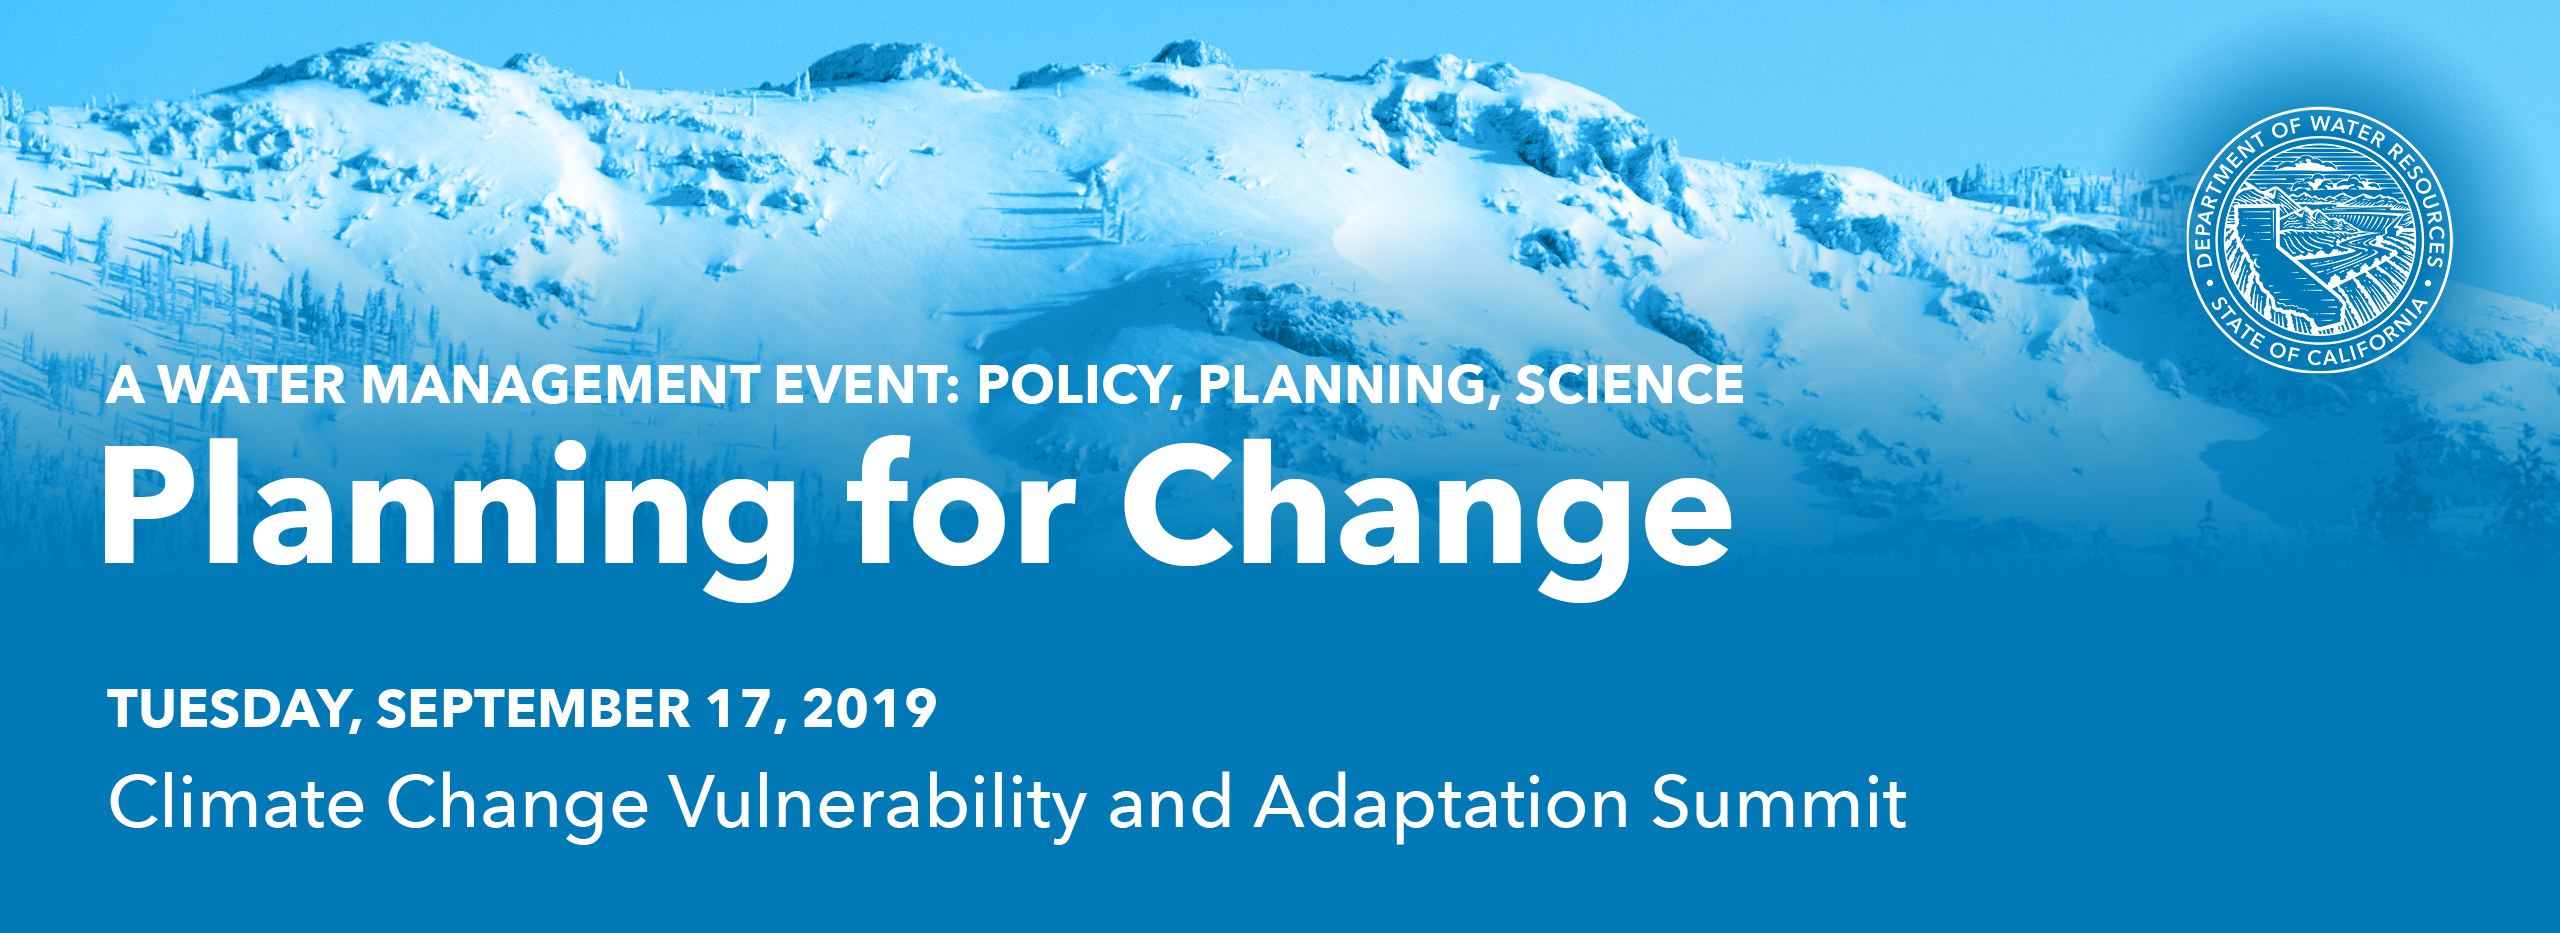 Climate Change Vulnerability and Adaptation Summit